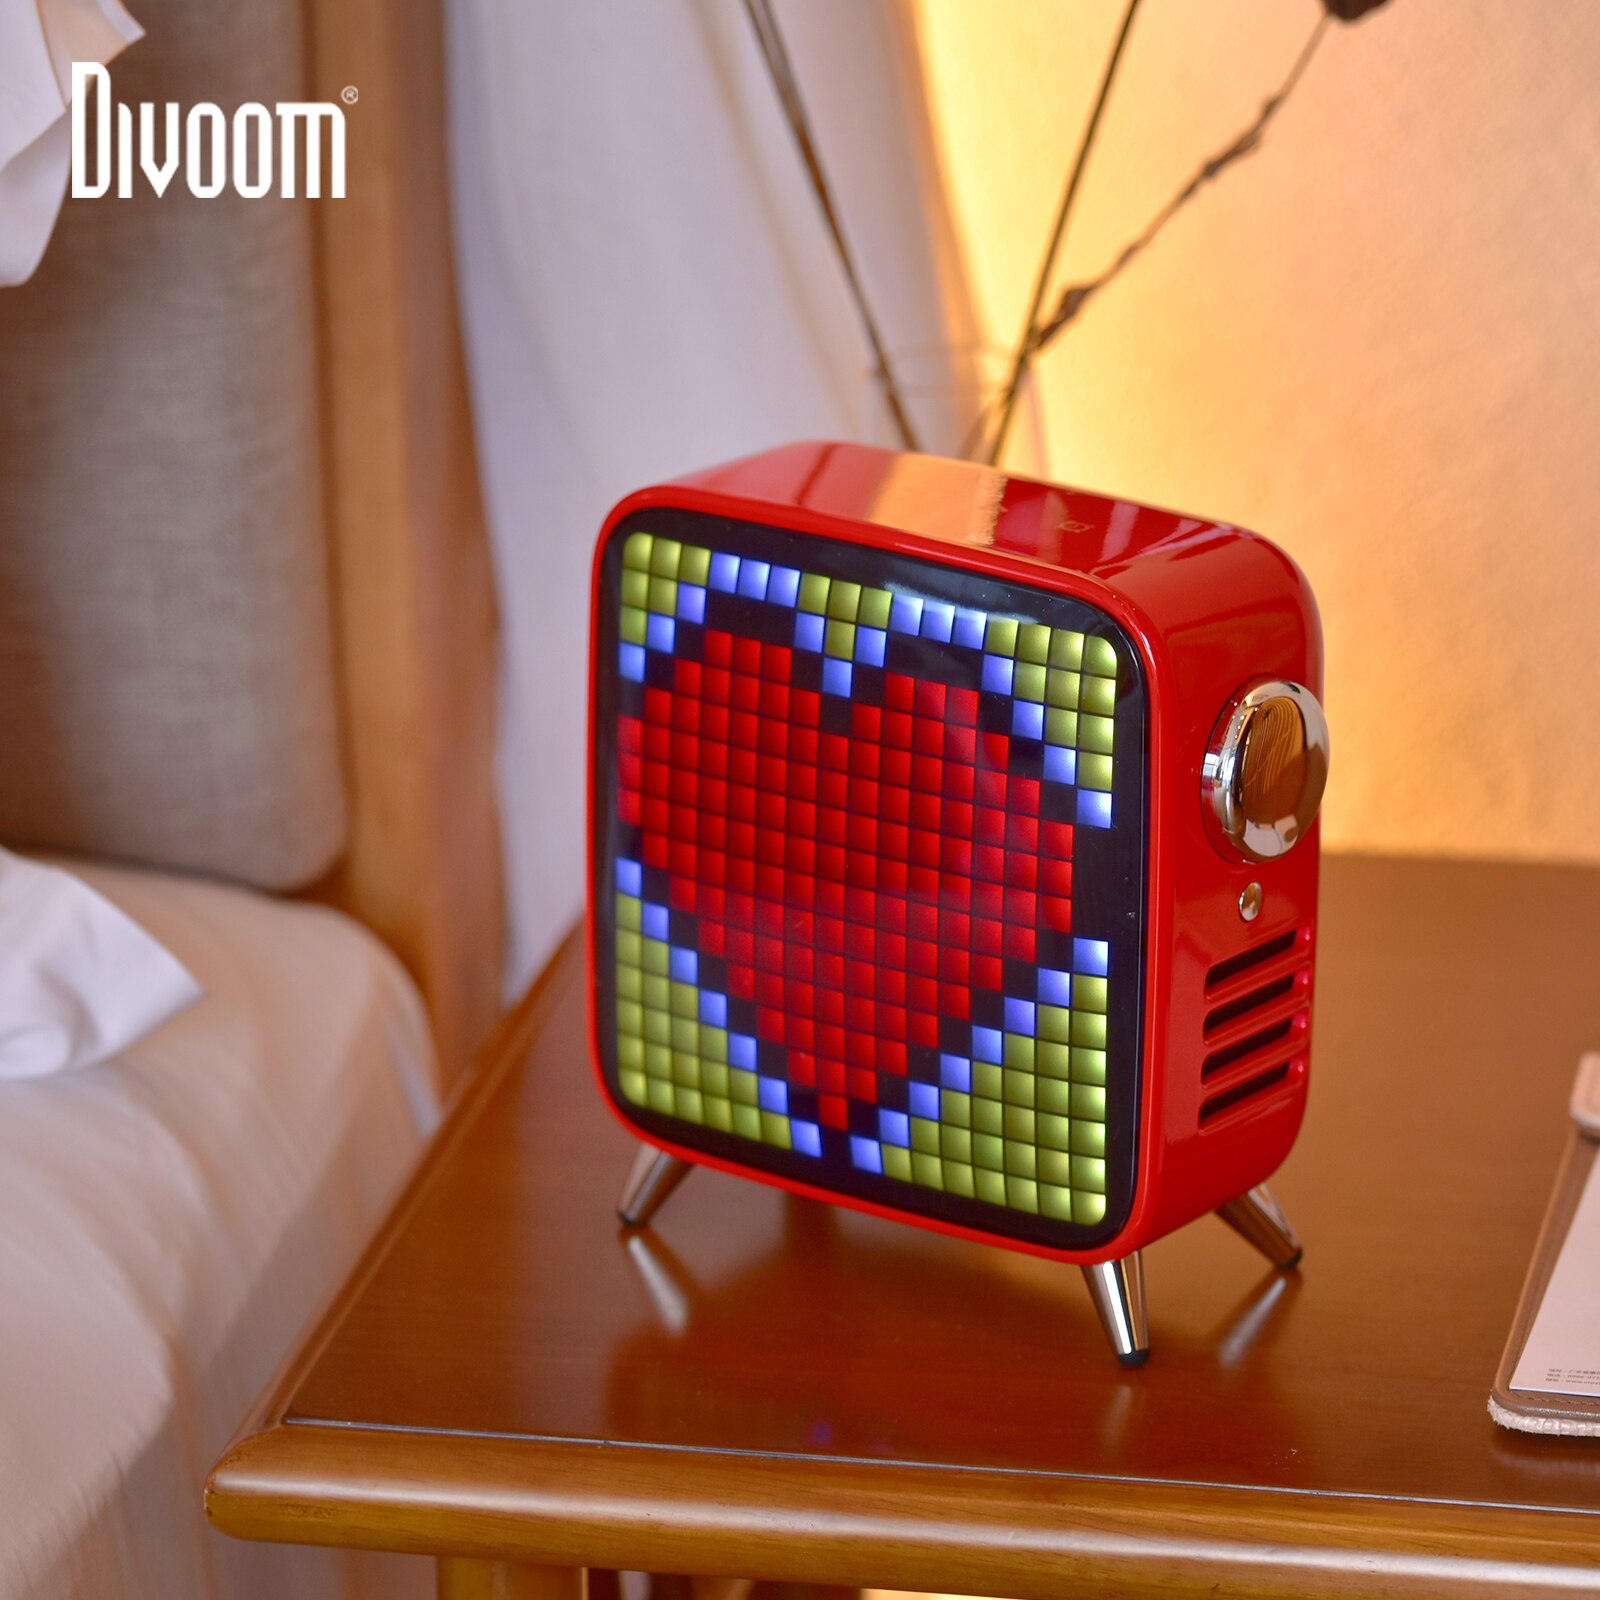 Review Divoom Tivoo Max Pixel Art Bluetooth Wireless Speaker with 2.1 Audio System 40W Output Heavy Bass App control for IOS & Android